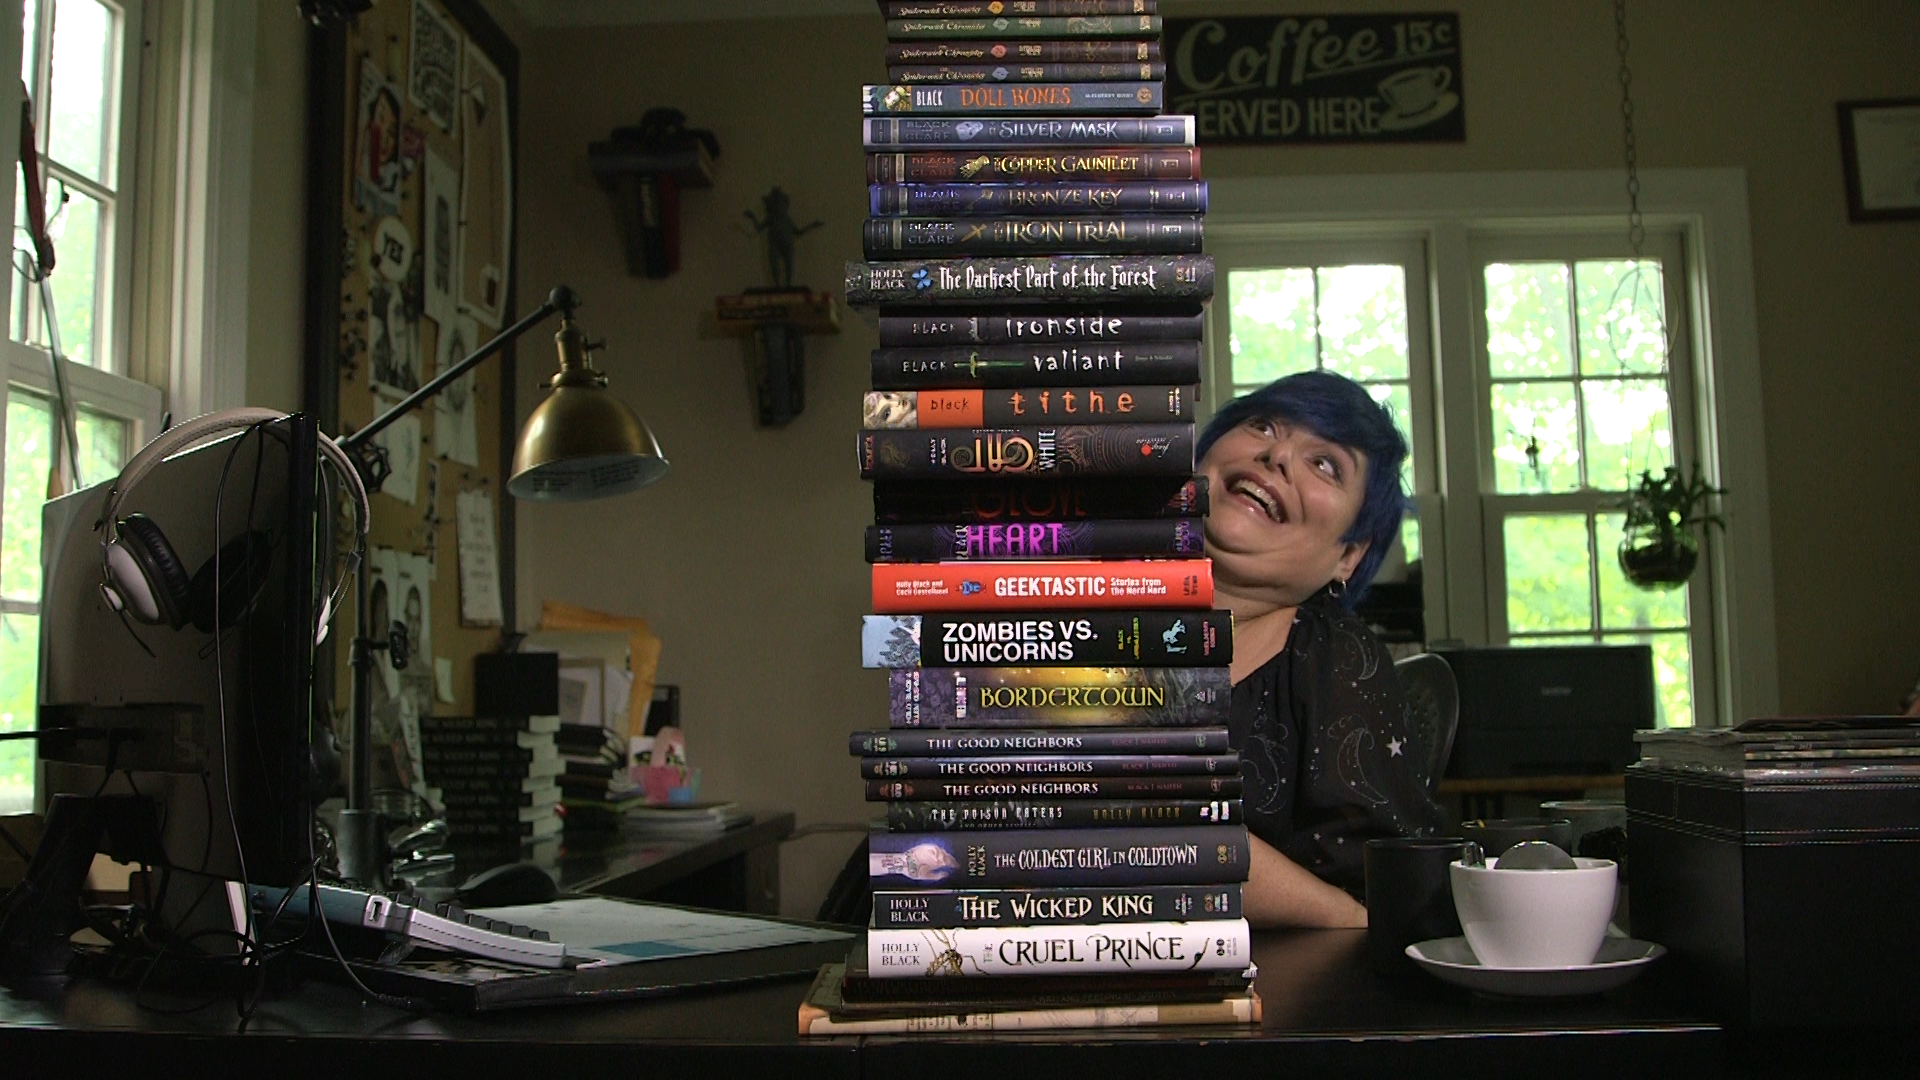 Holly+Black+looking+up+her+stack+of+books.png